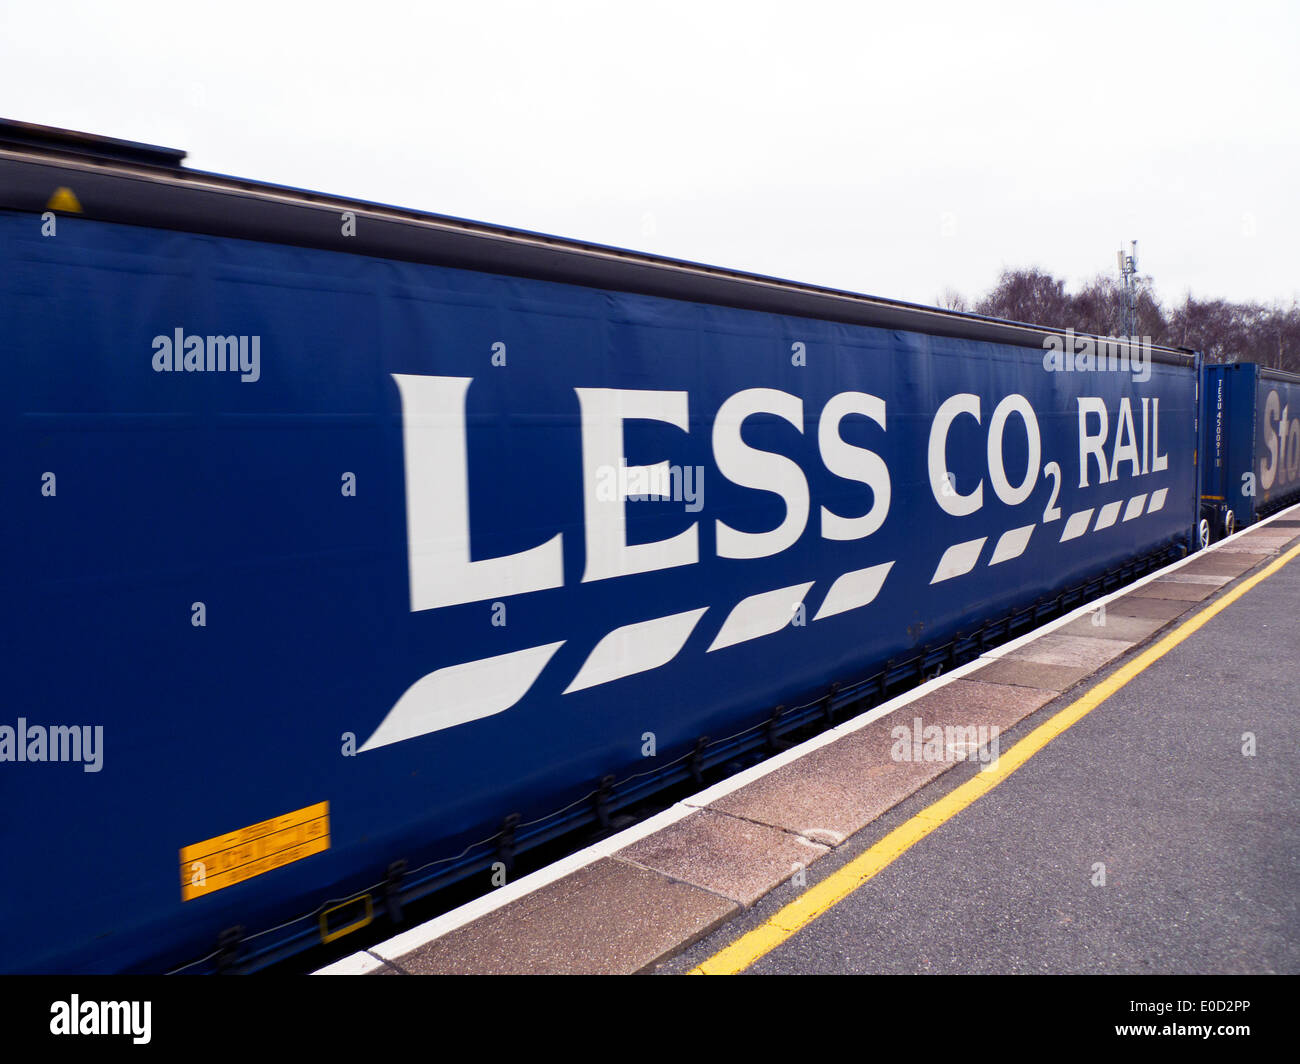 Tesco supermarket 'Less CO2 Rail' advert sign on side of goods train container  Gloucestershire England UK KATHY DEWITT - Stock Image